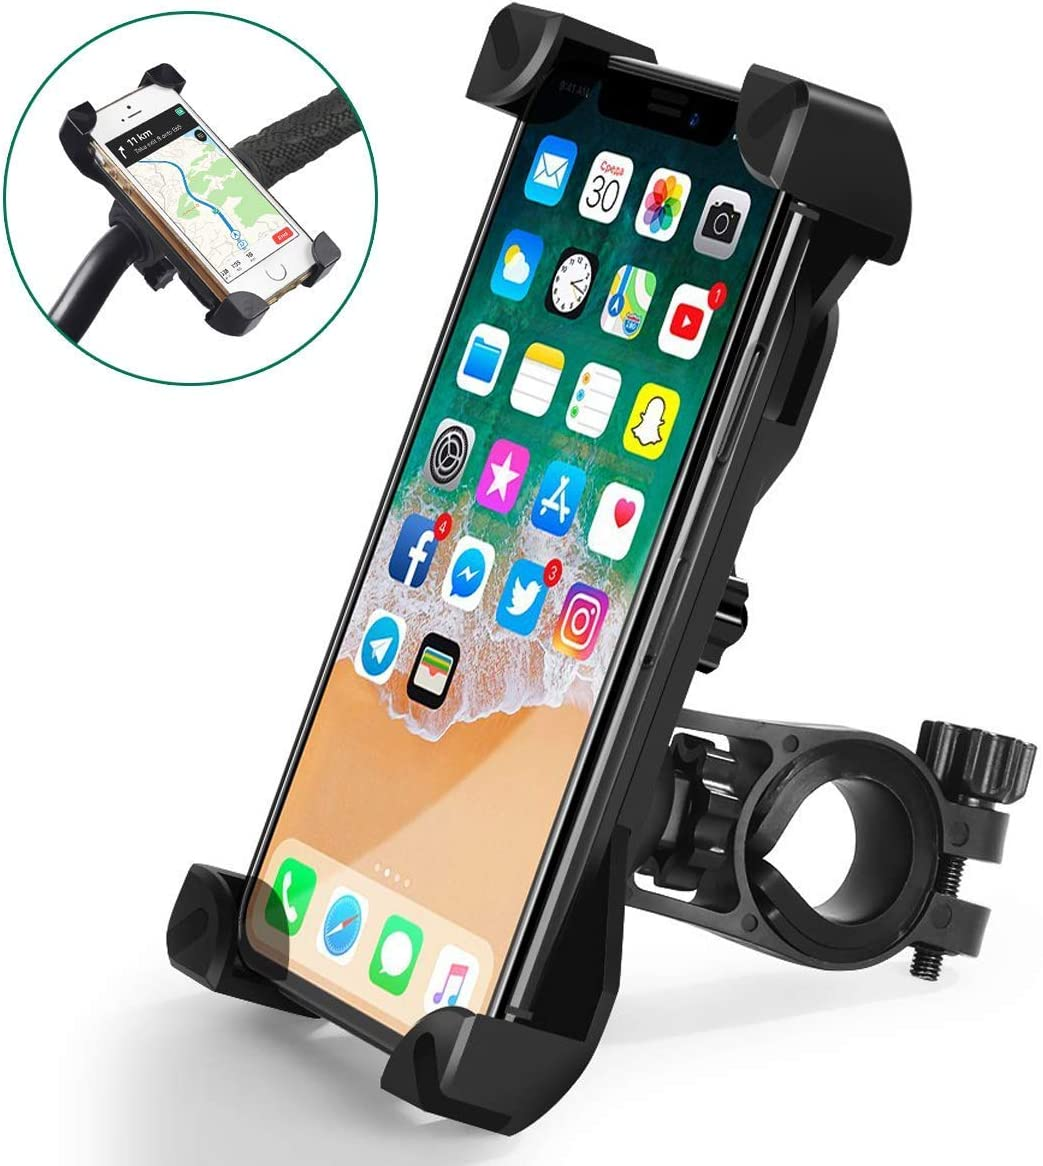 Bike Phone Holder for iPhone Android GPS Other Devices Black Bike Phone Mount 360/°Rotation